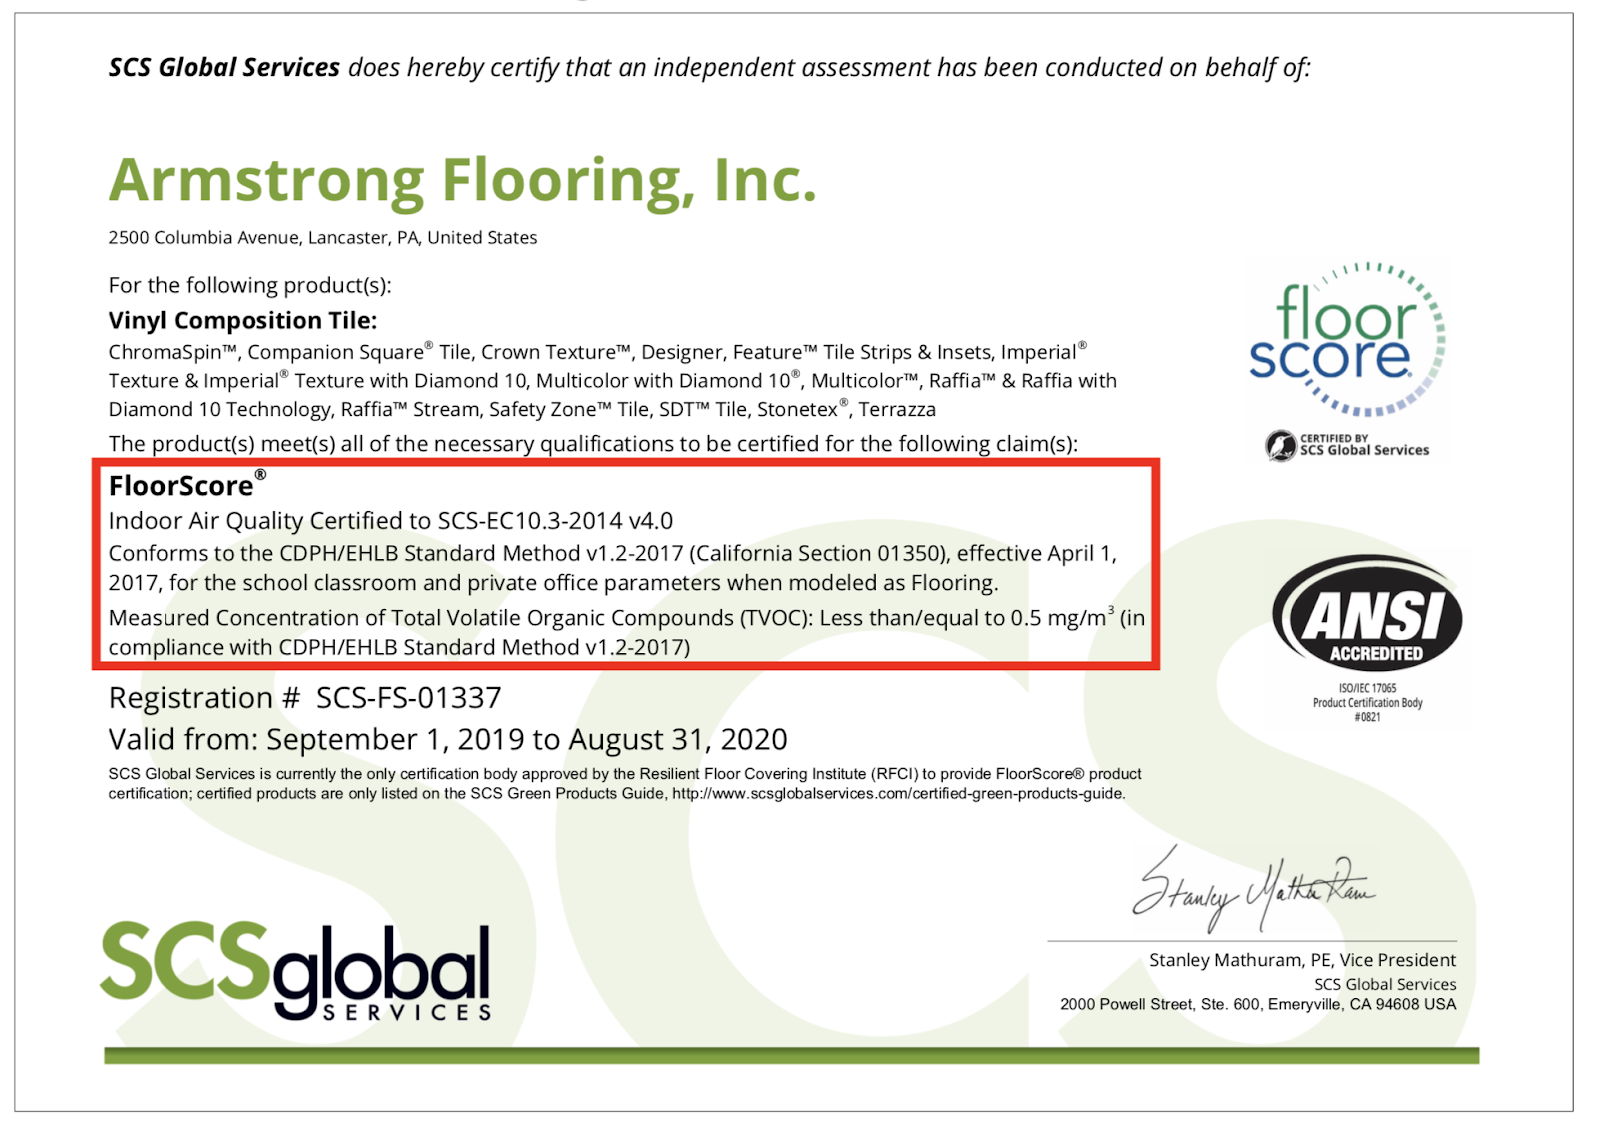 ieqc2-armstrong-flooring